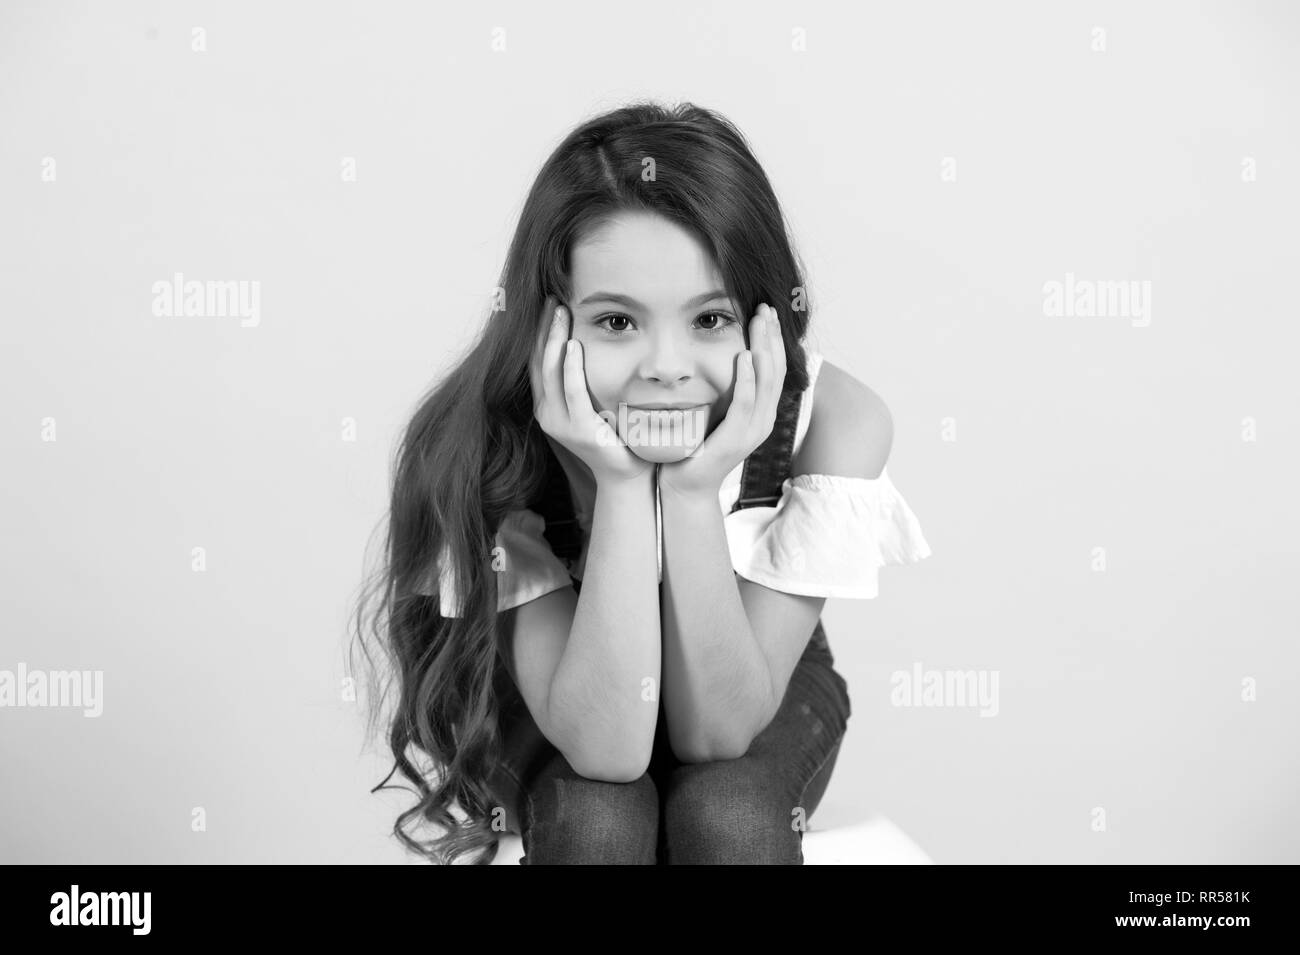 Girl Preteen Black And White Stock Photos Images Alamy